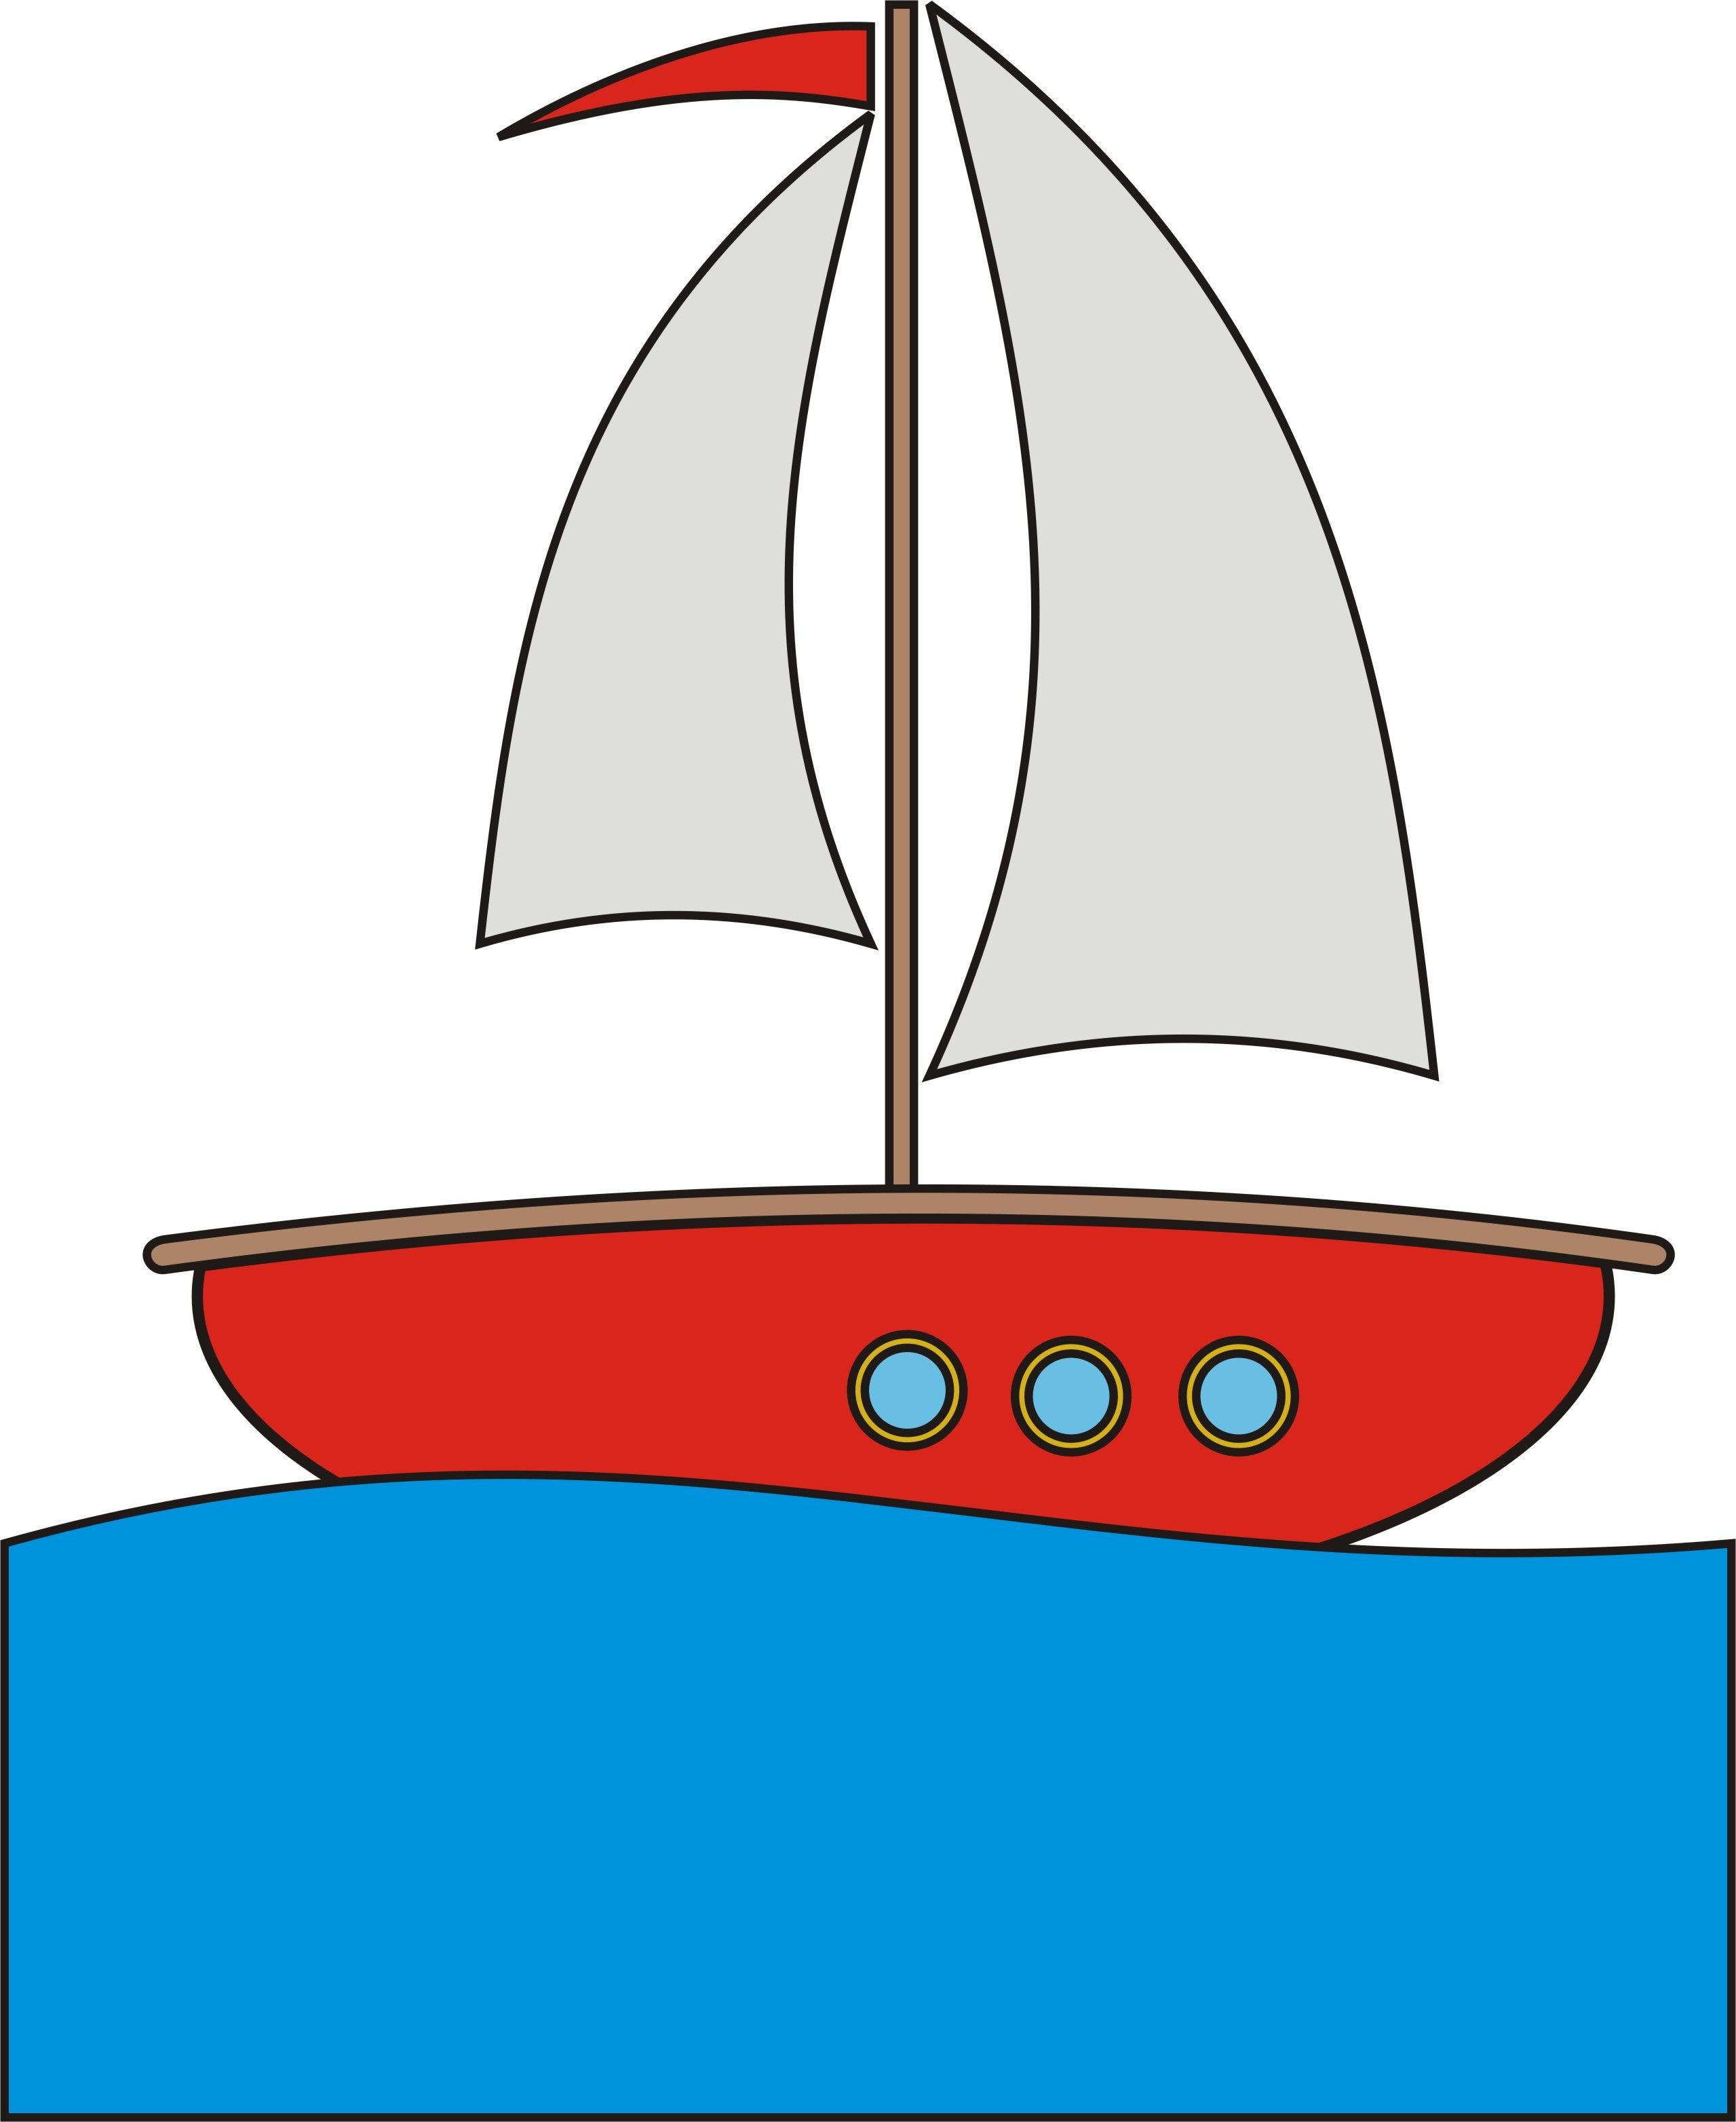 Cartoon pictures tug boats. Boating clipart rock the boat